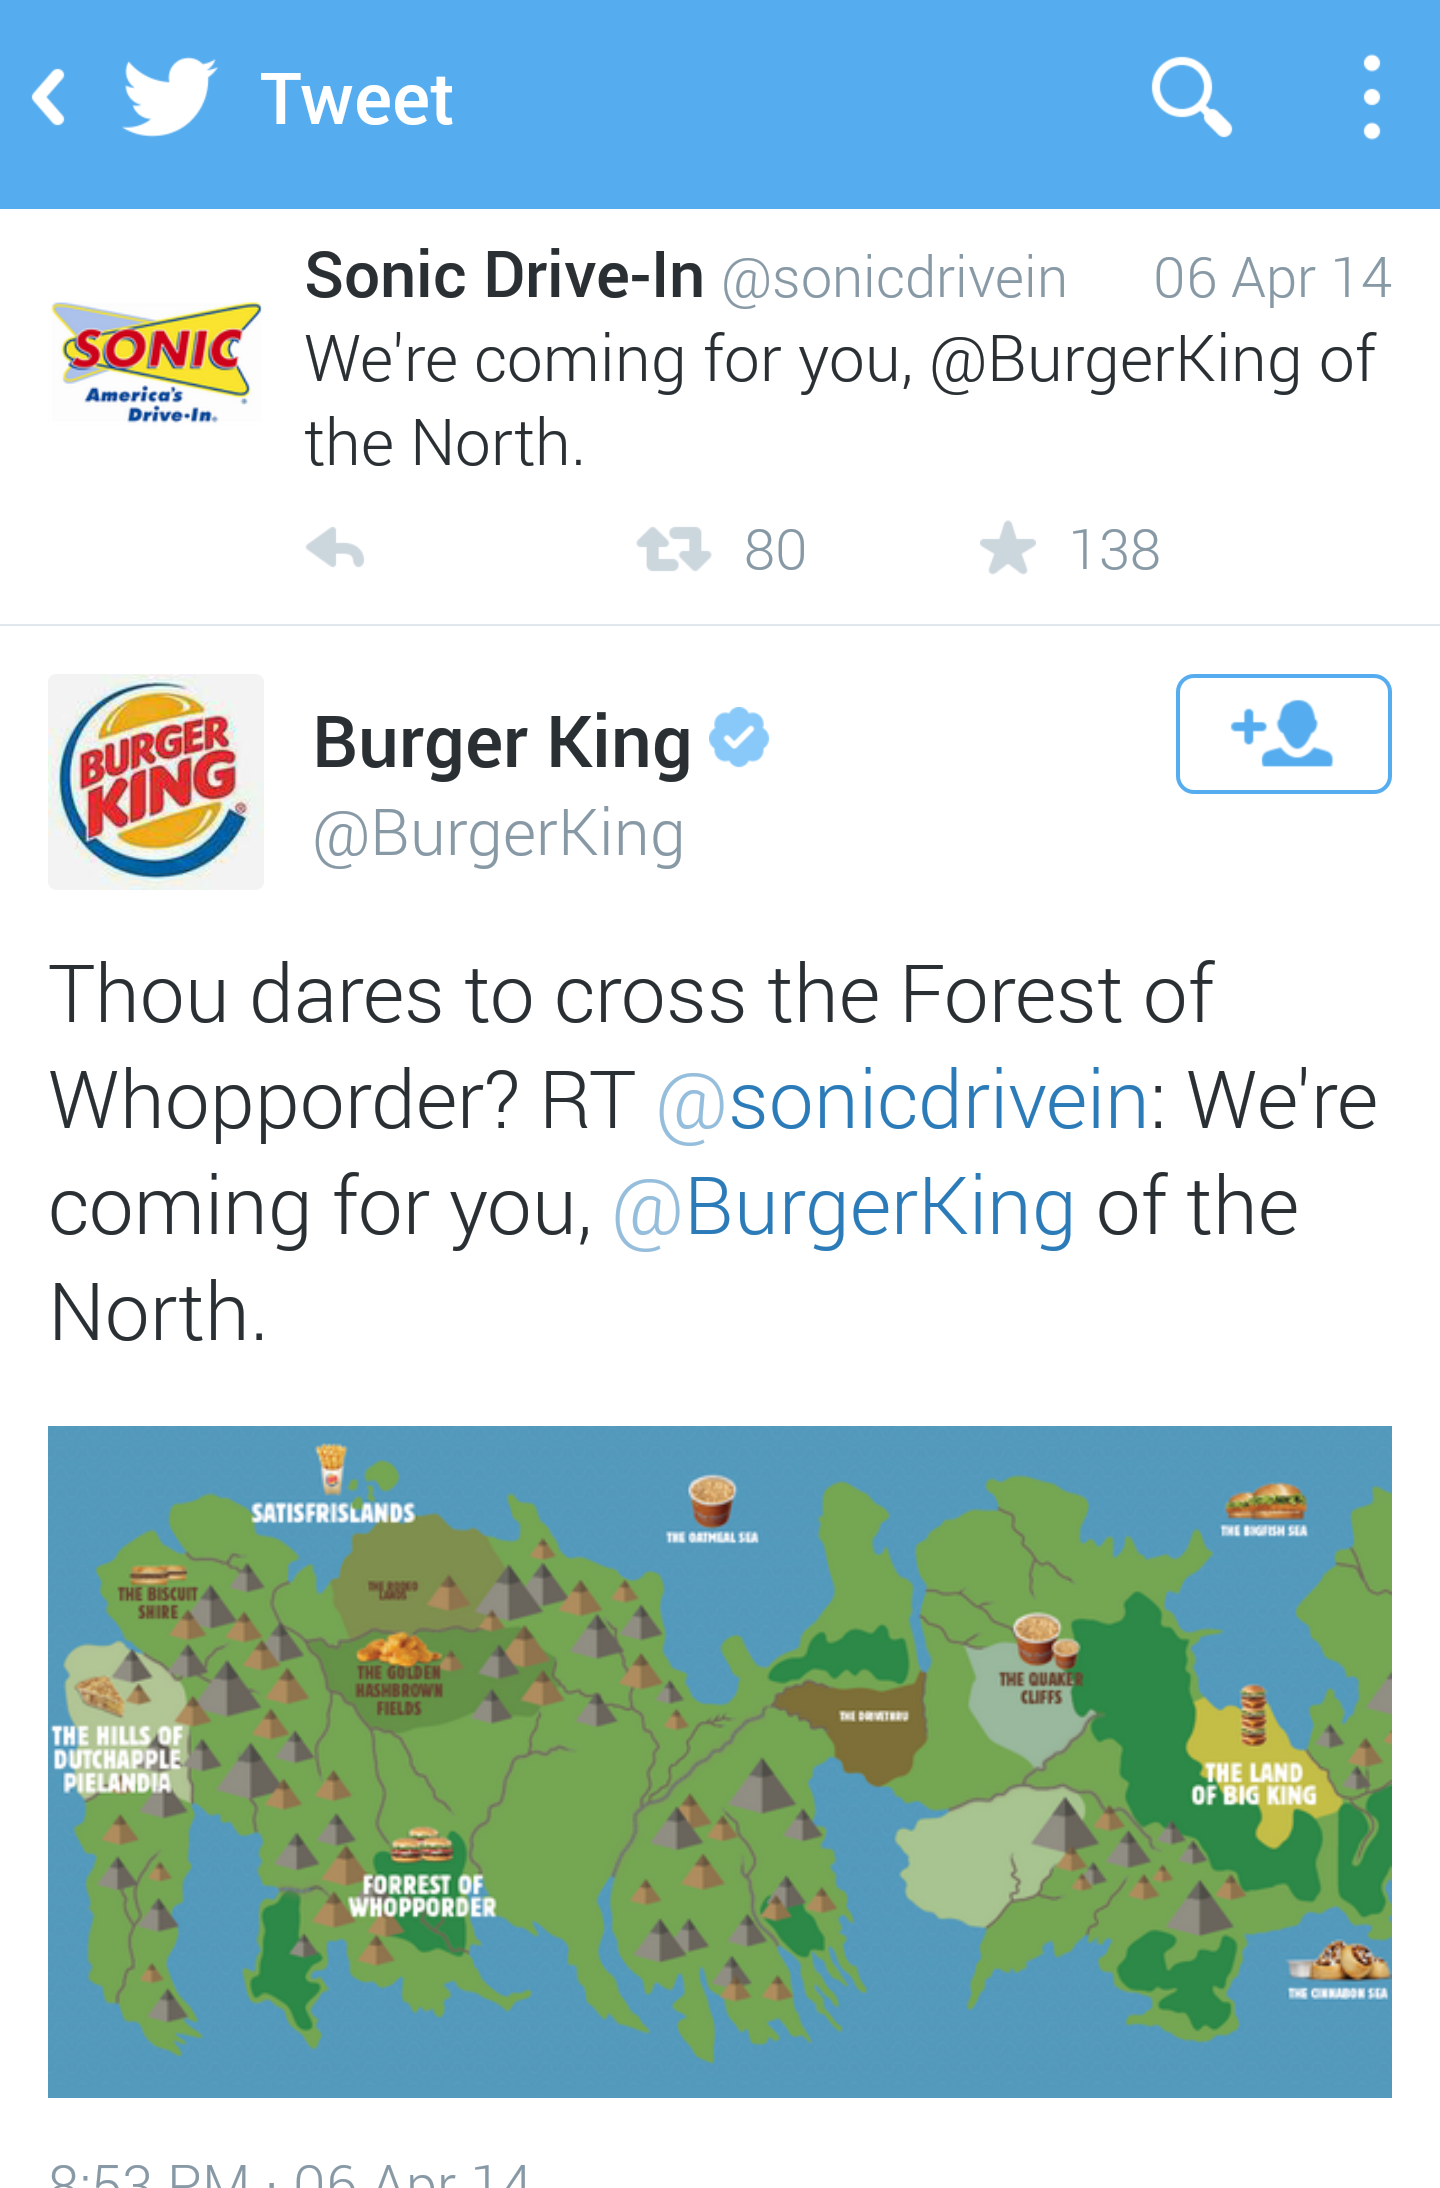 Burger King actually created a burger-themed GoT map for their response.